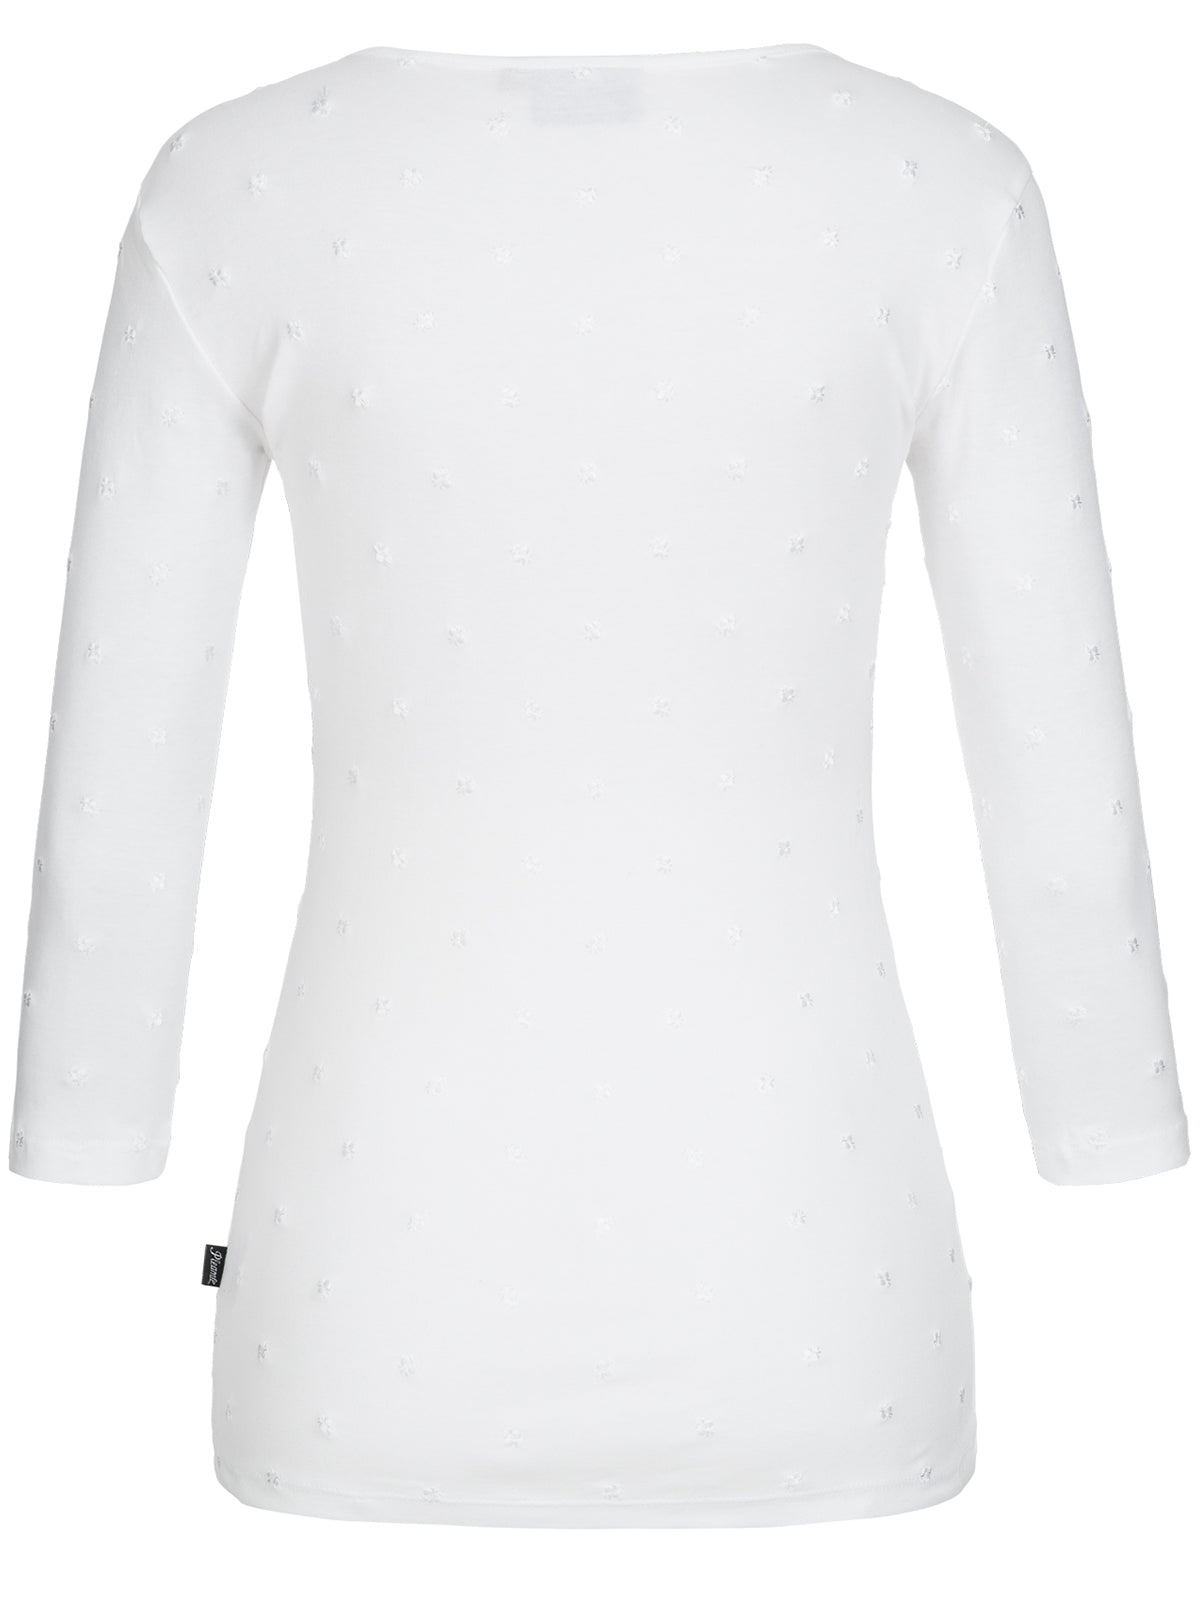 Pleamle Damen Shirt 3/4 Arm weiß TiT